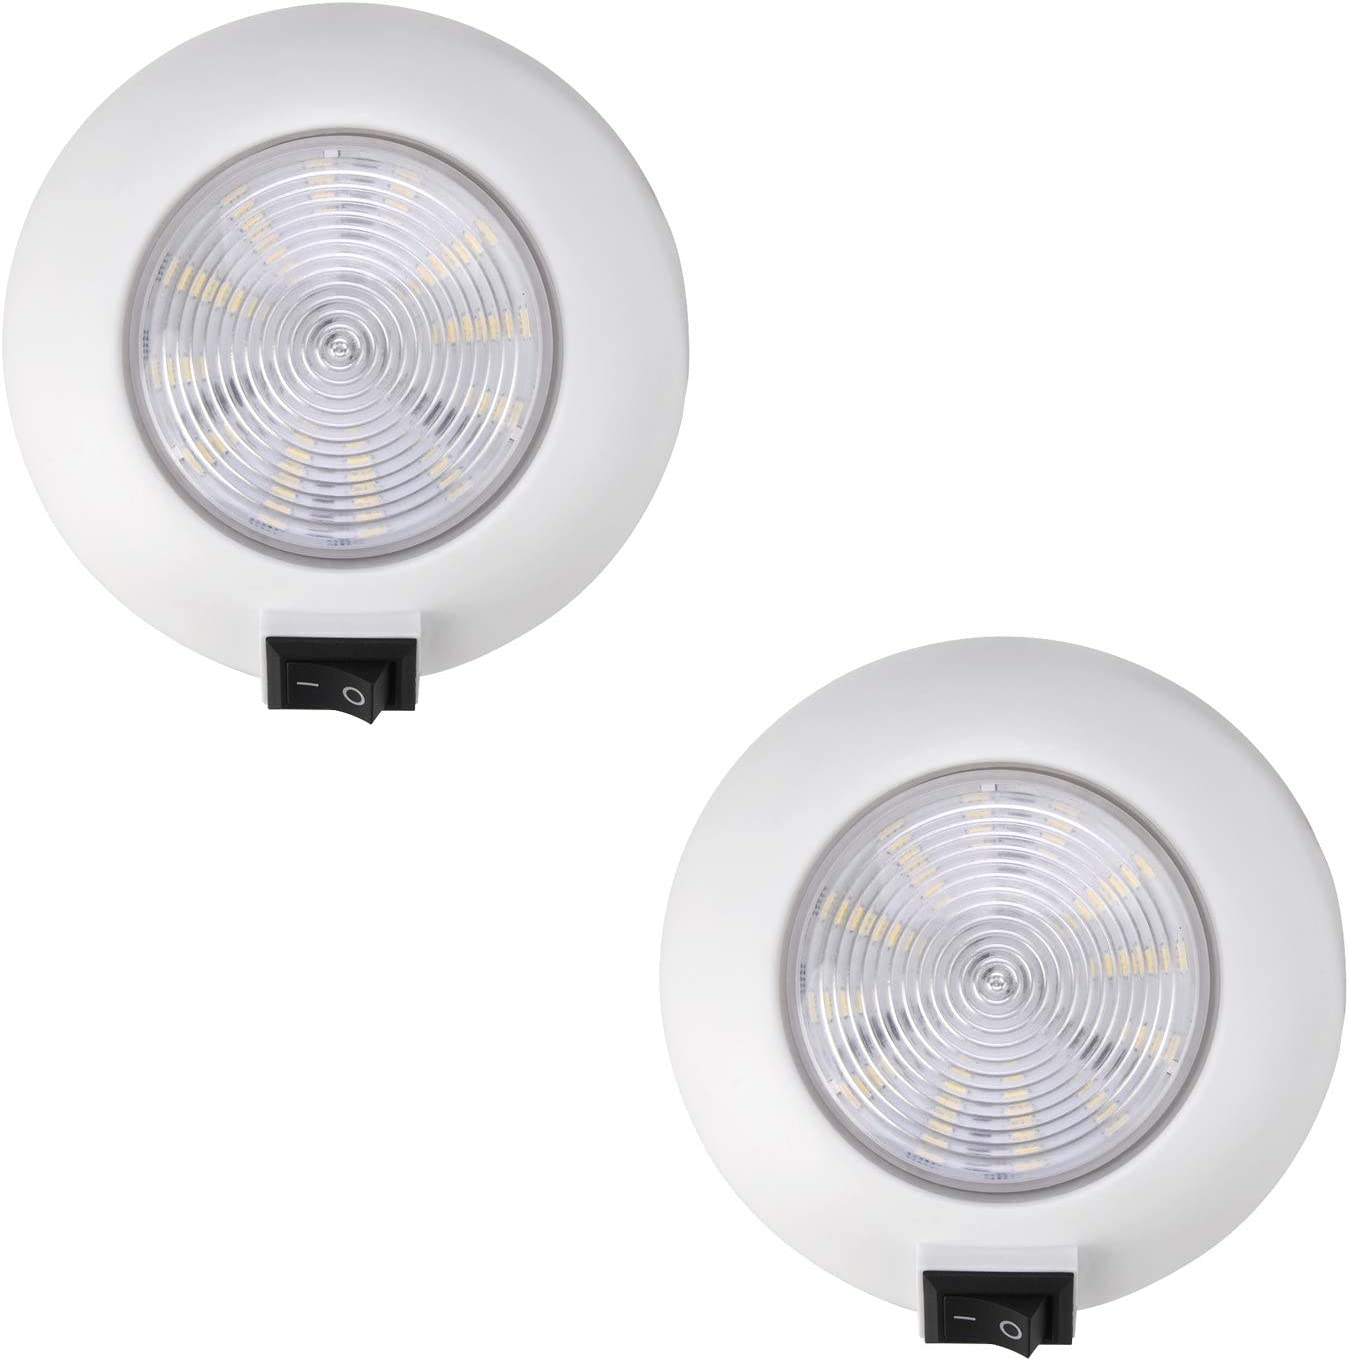 ANYPOWK 12 Volt LED Puck Light 4'' Ranking TOP20 with Super beauty product restock quality top 3W 4500K Switch Neutral